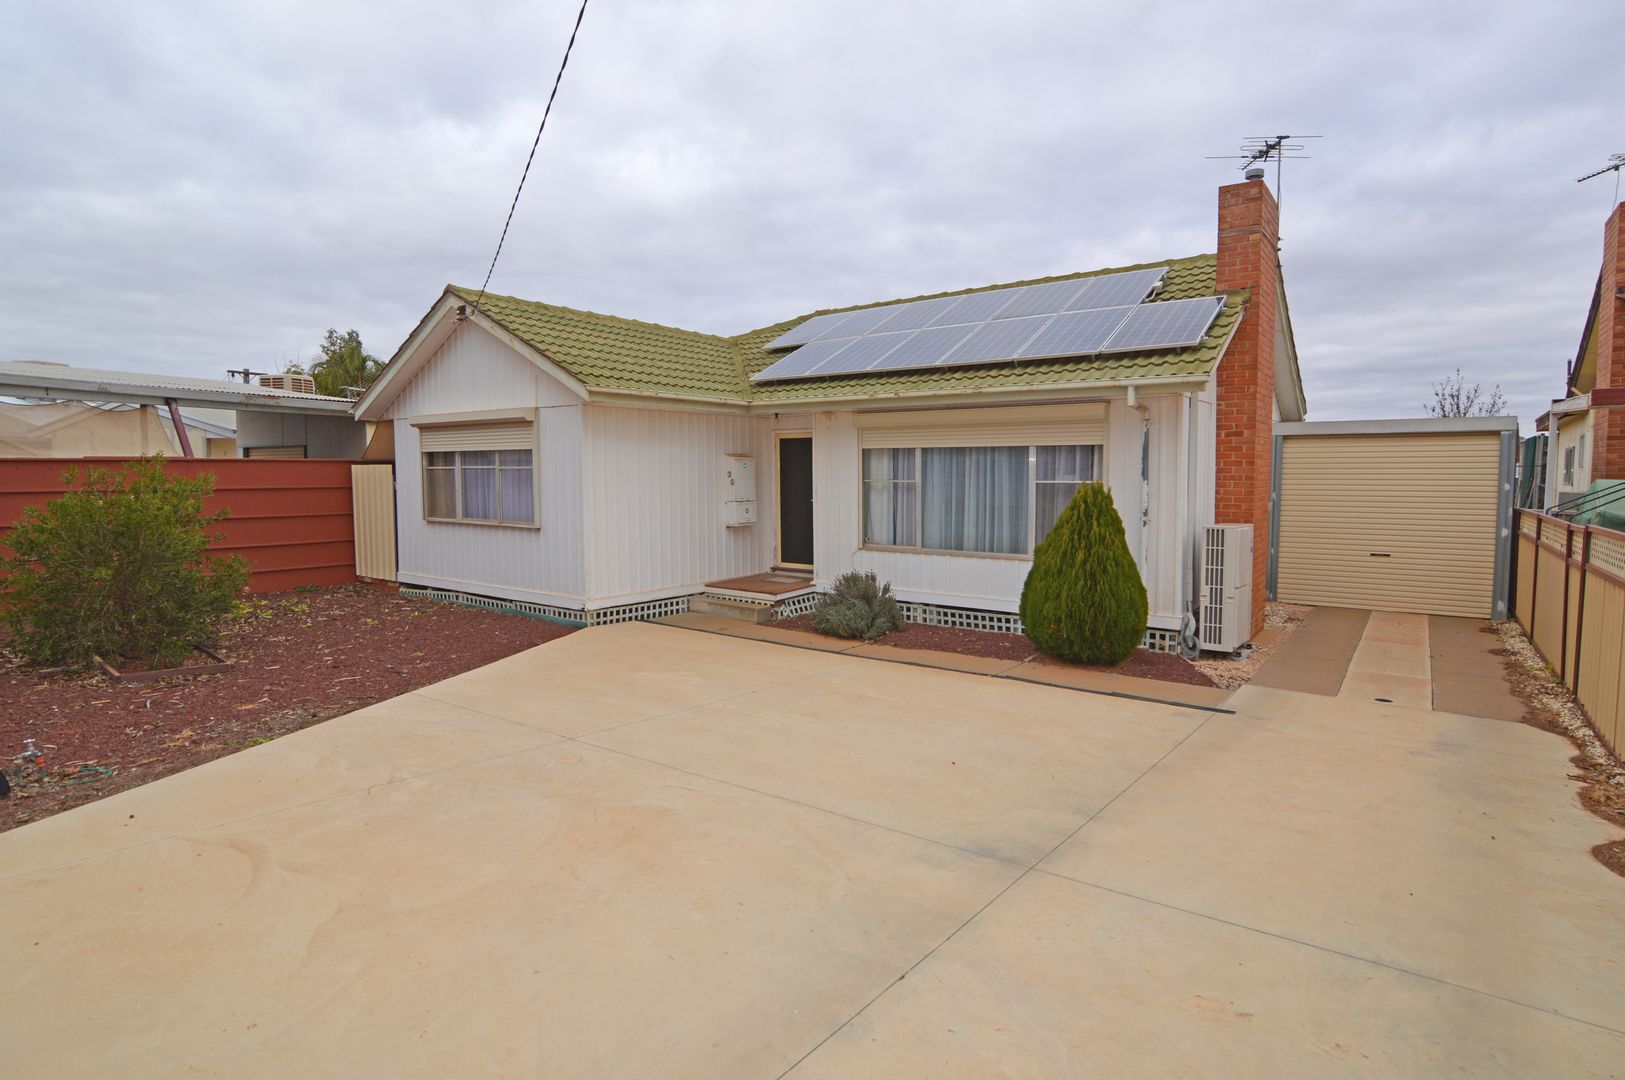 30 Commercial Street, Merbein VIC 3505, Image 0